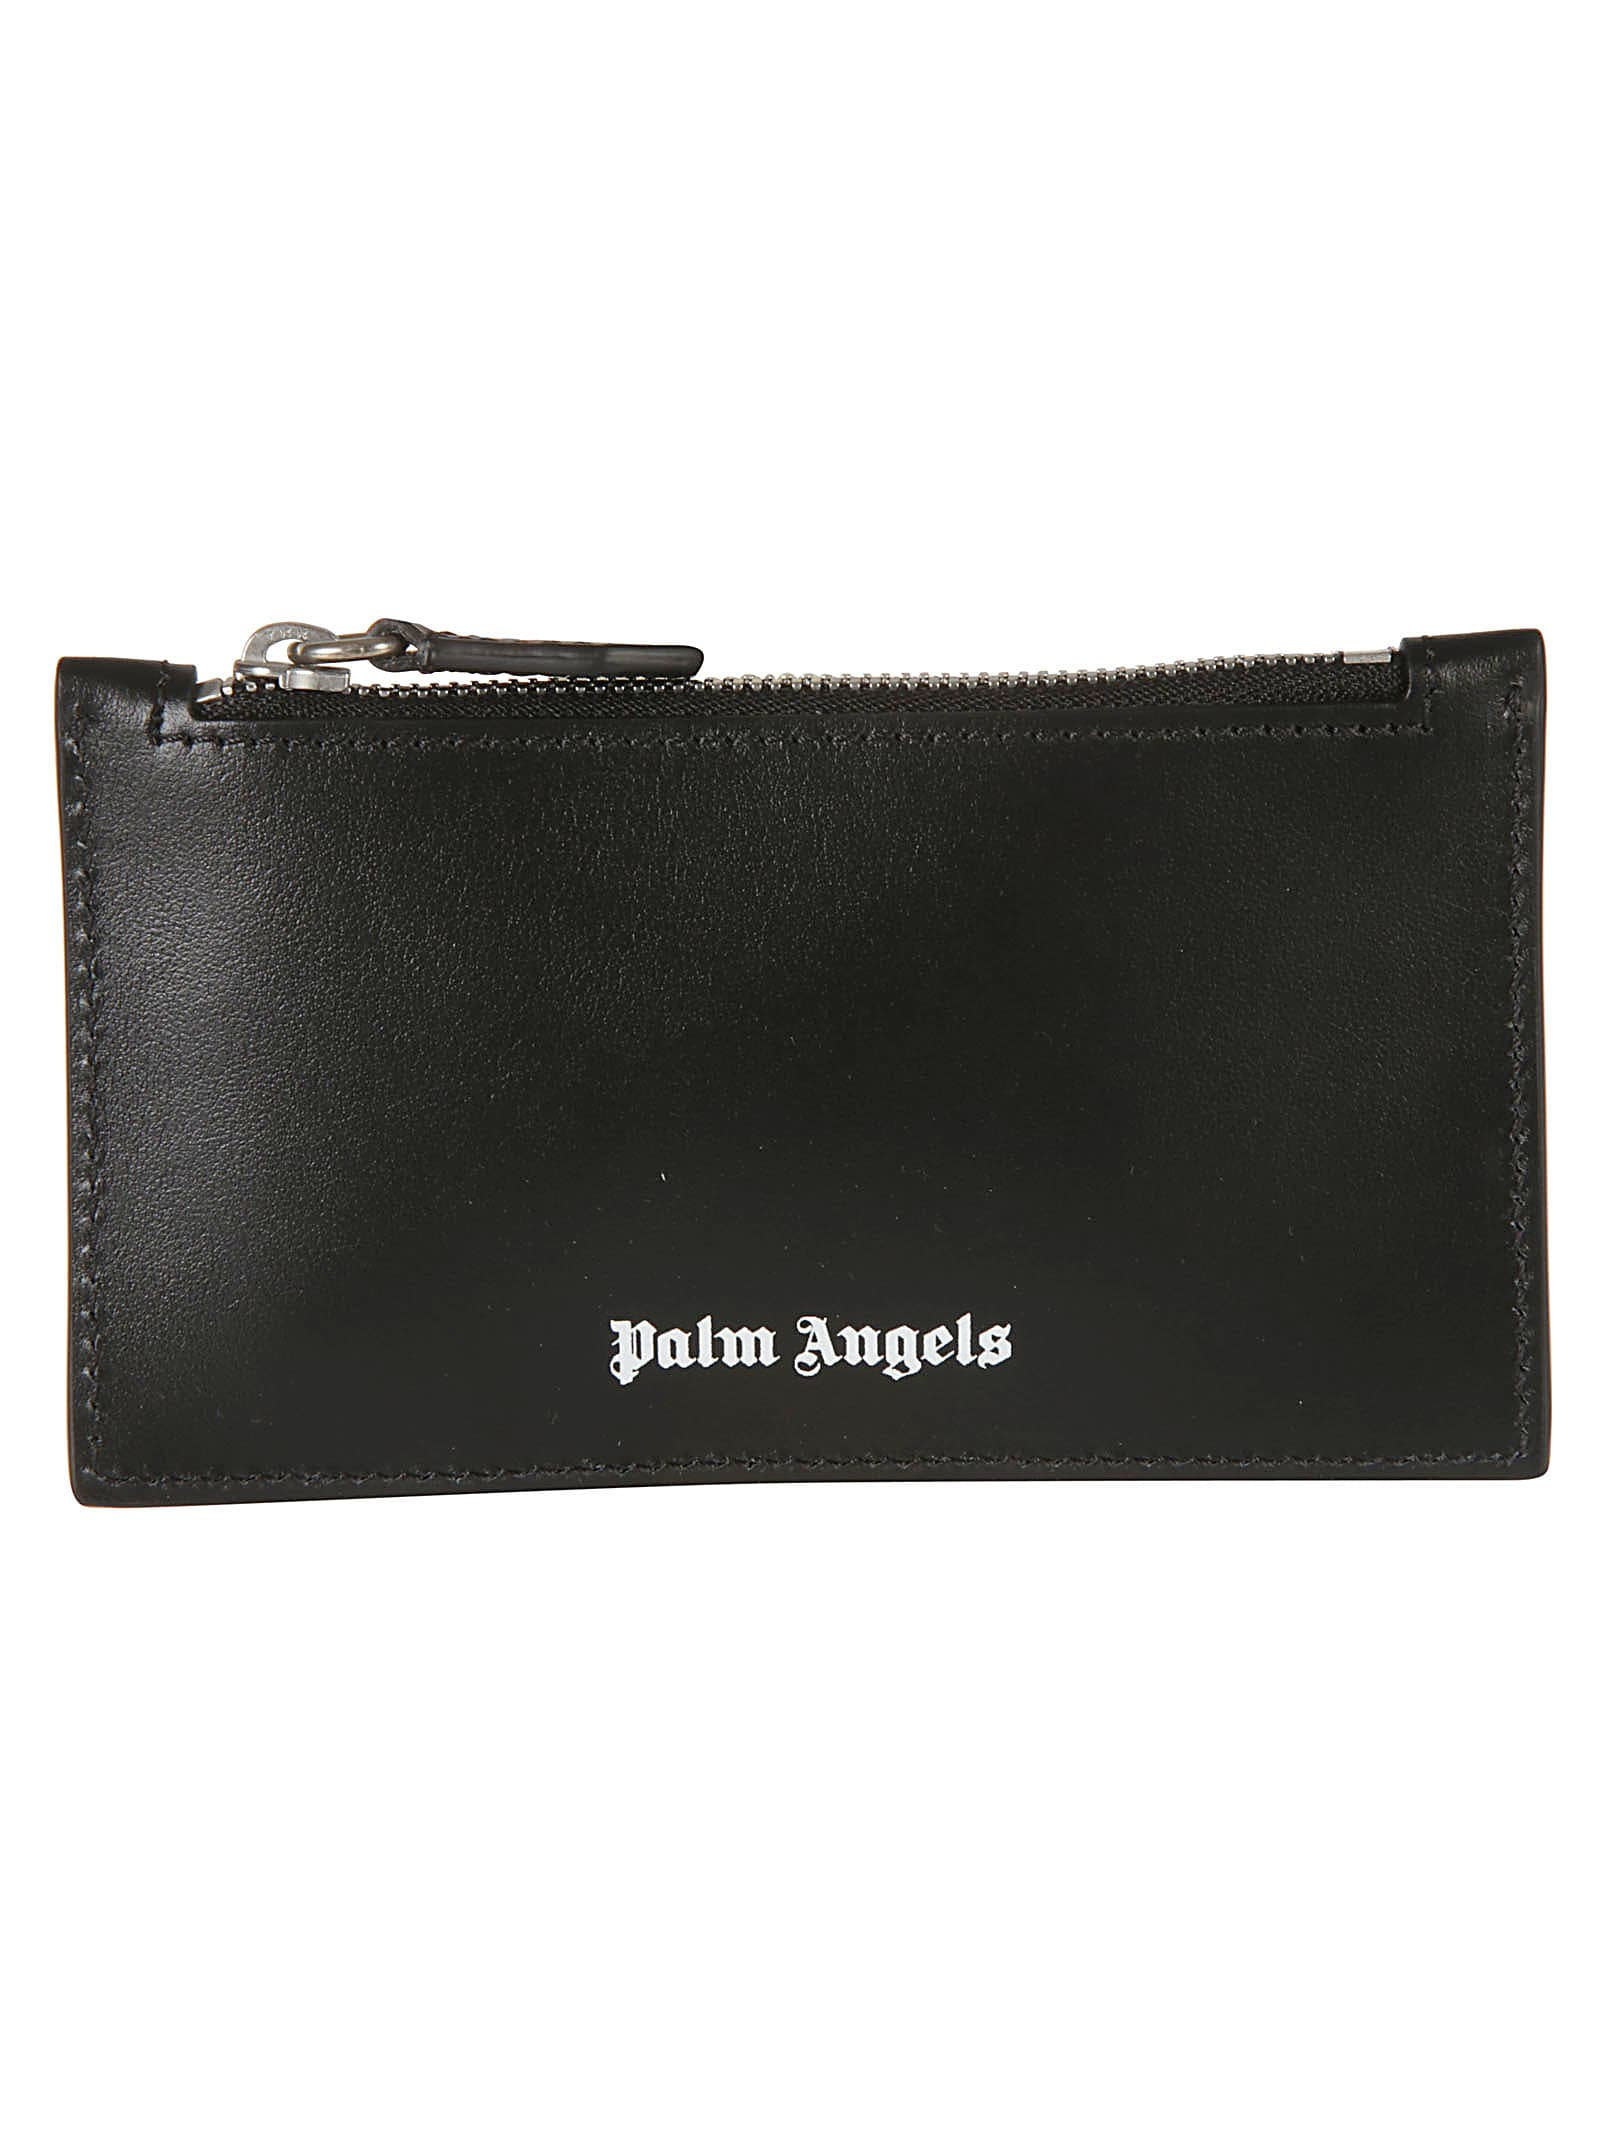 Palm Angels Essential Zip Pouch